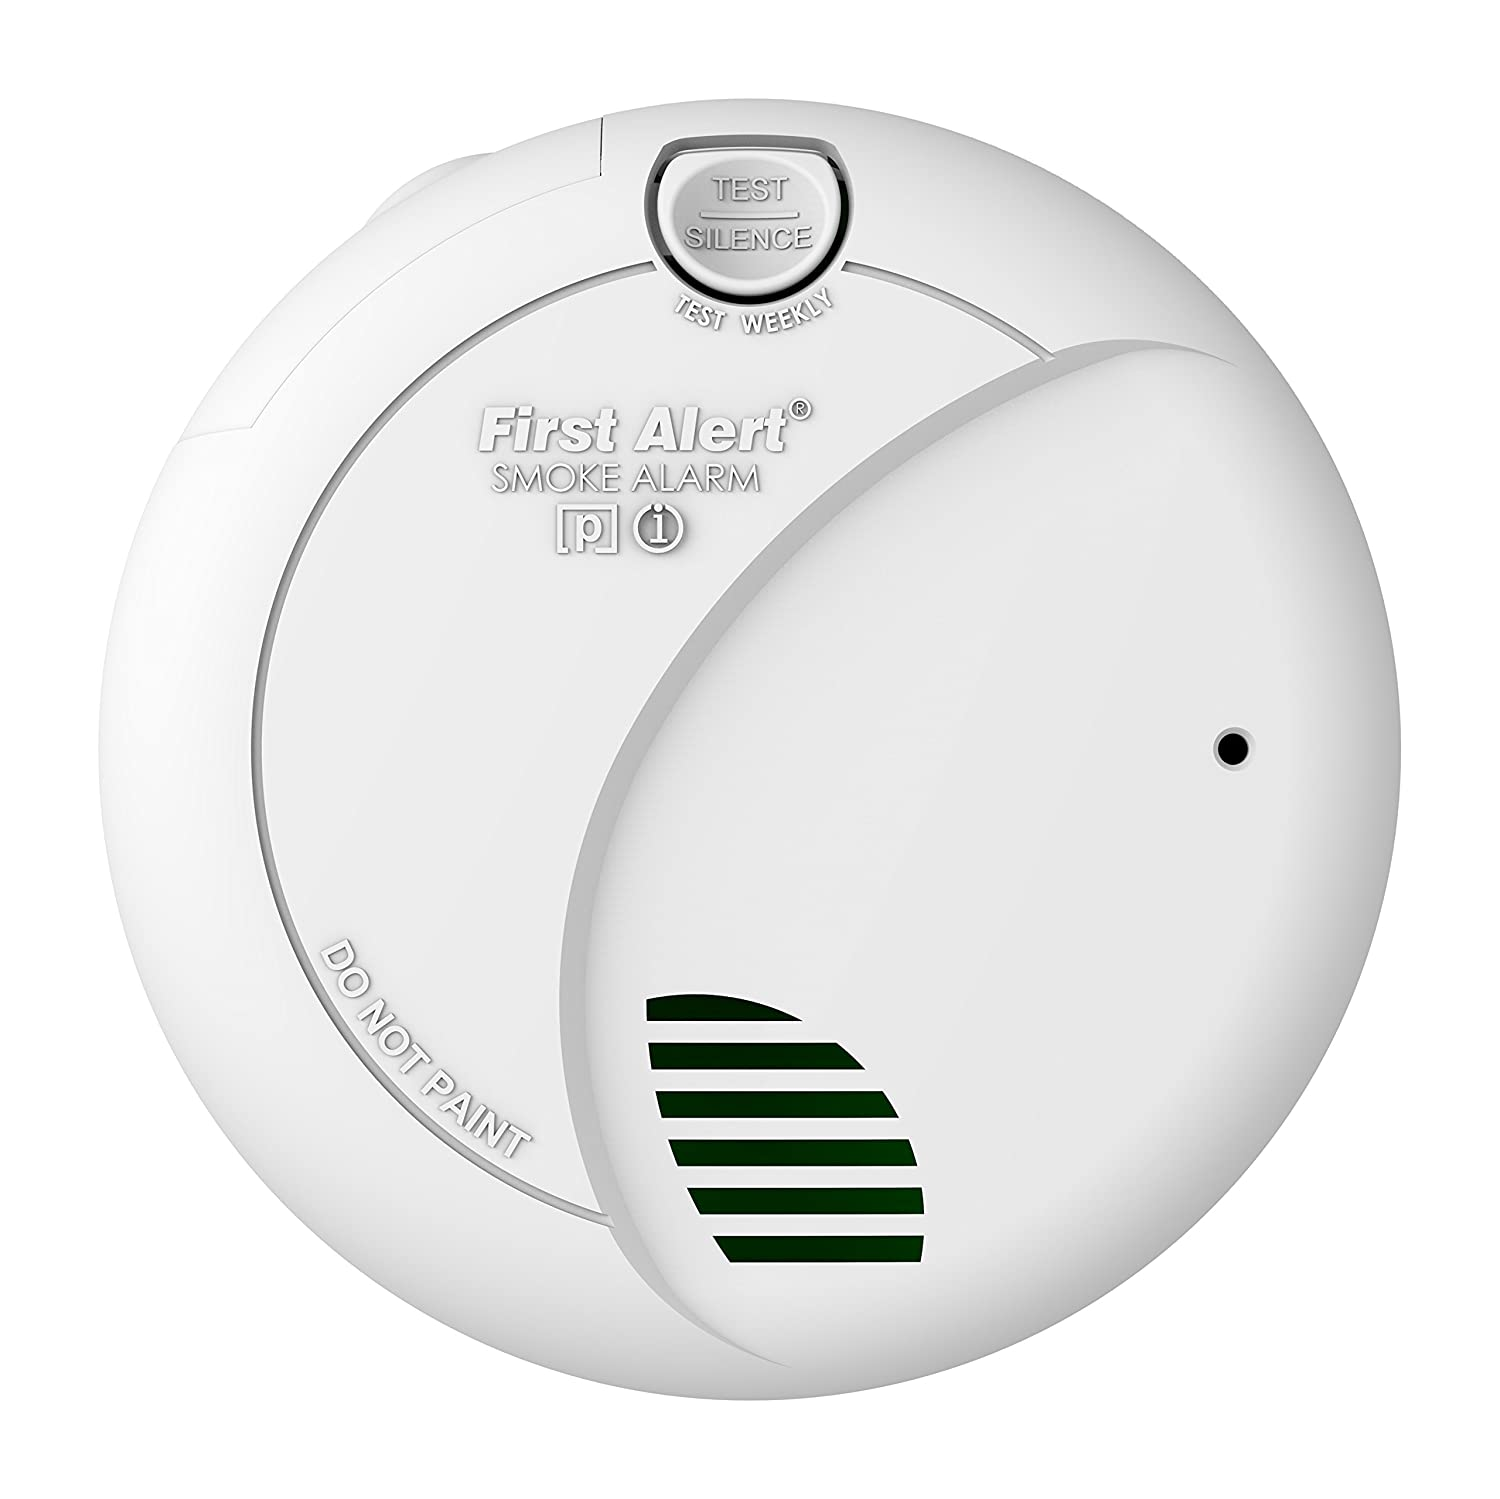 71VsW6 TTrL._SL1500_ amazon com first alert brk 7010b hardwire smoke alarm with Simplex Smoke Detector Wiring Diagrams at edmiracle.co